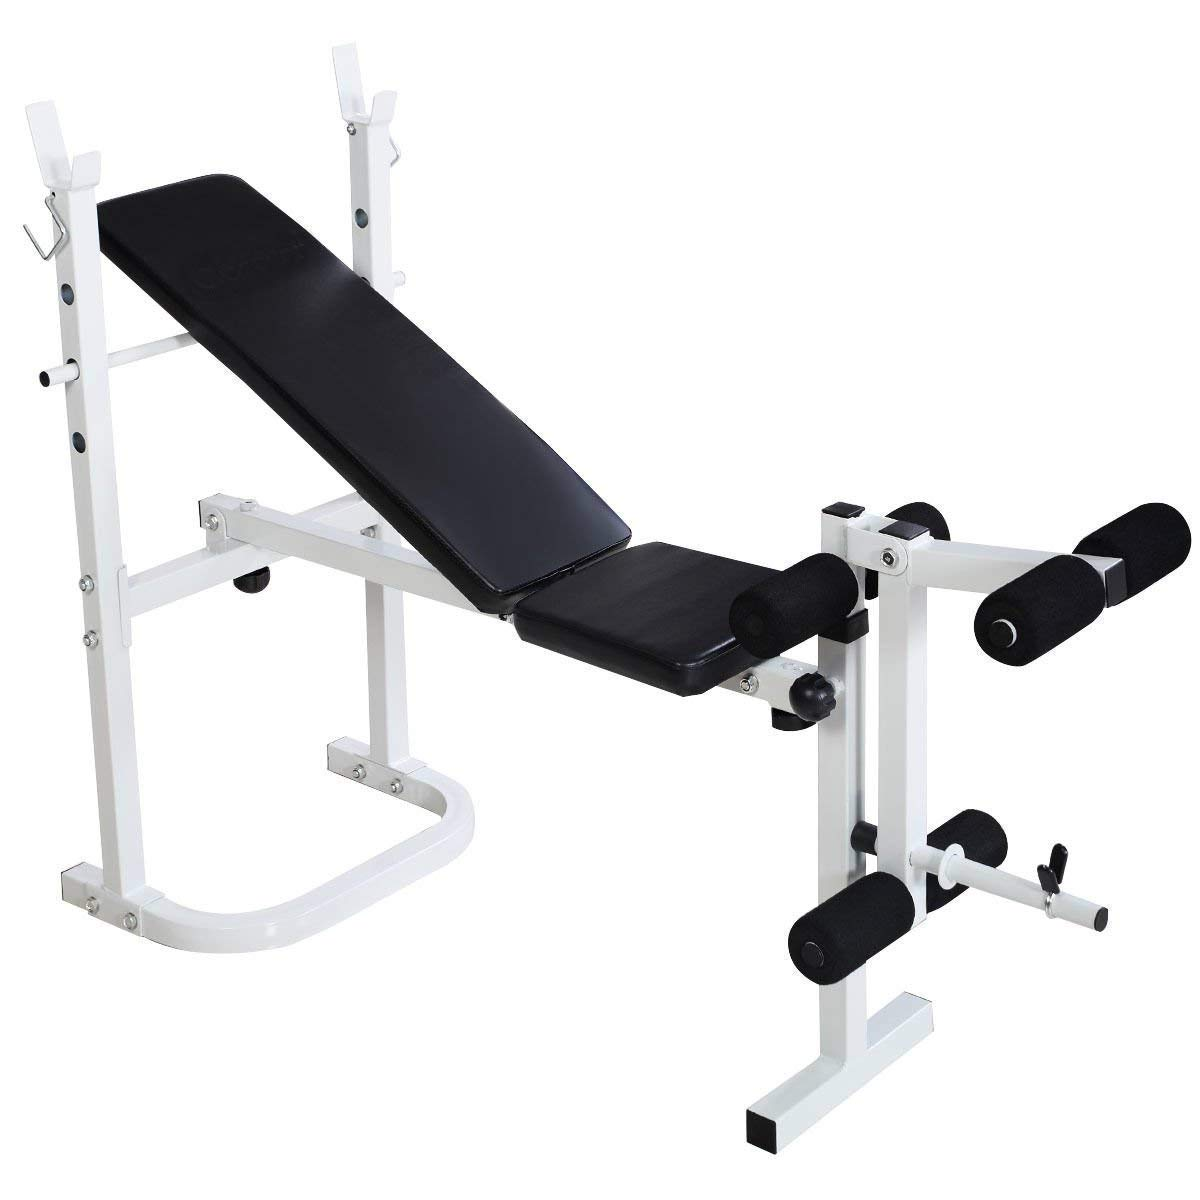 Goplus Olympic Weight Bench Adjustable Multi Purpose Folding Incline Exercise Bench Weight Lifting Beach For Full Body Workout